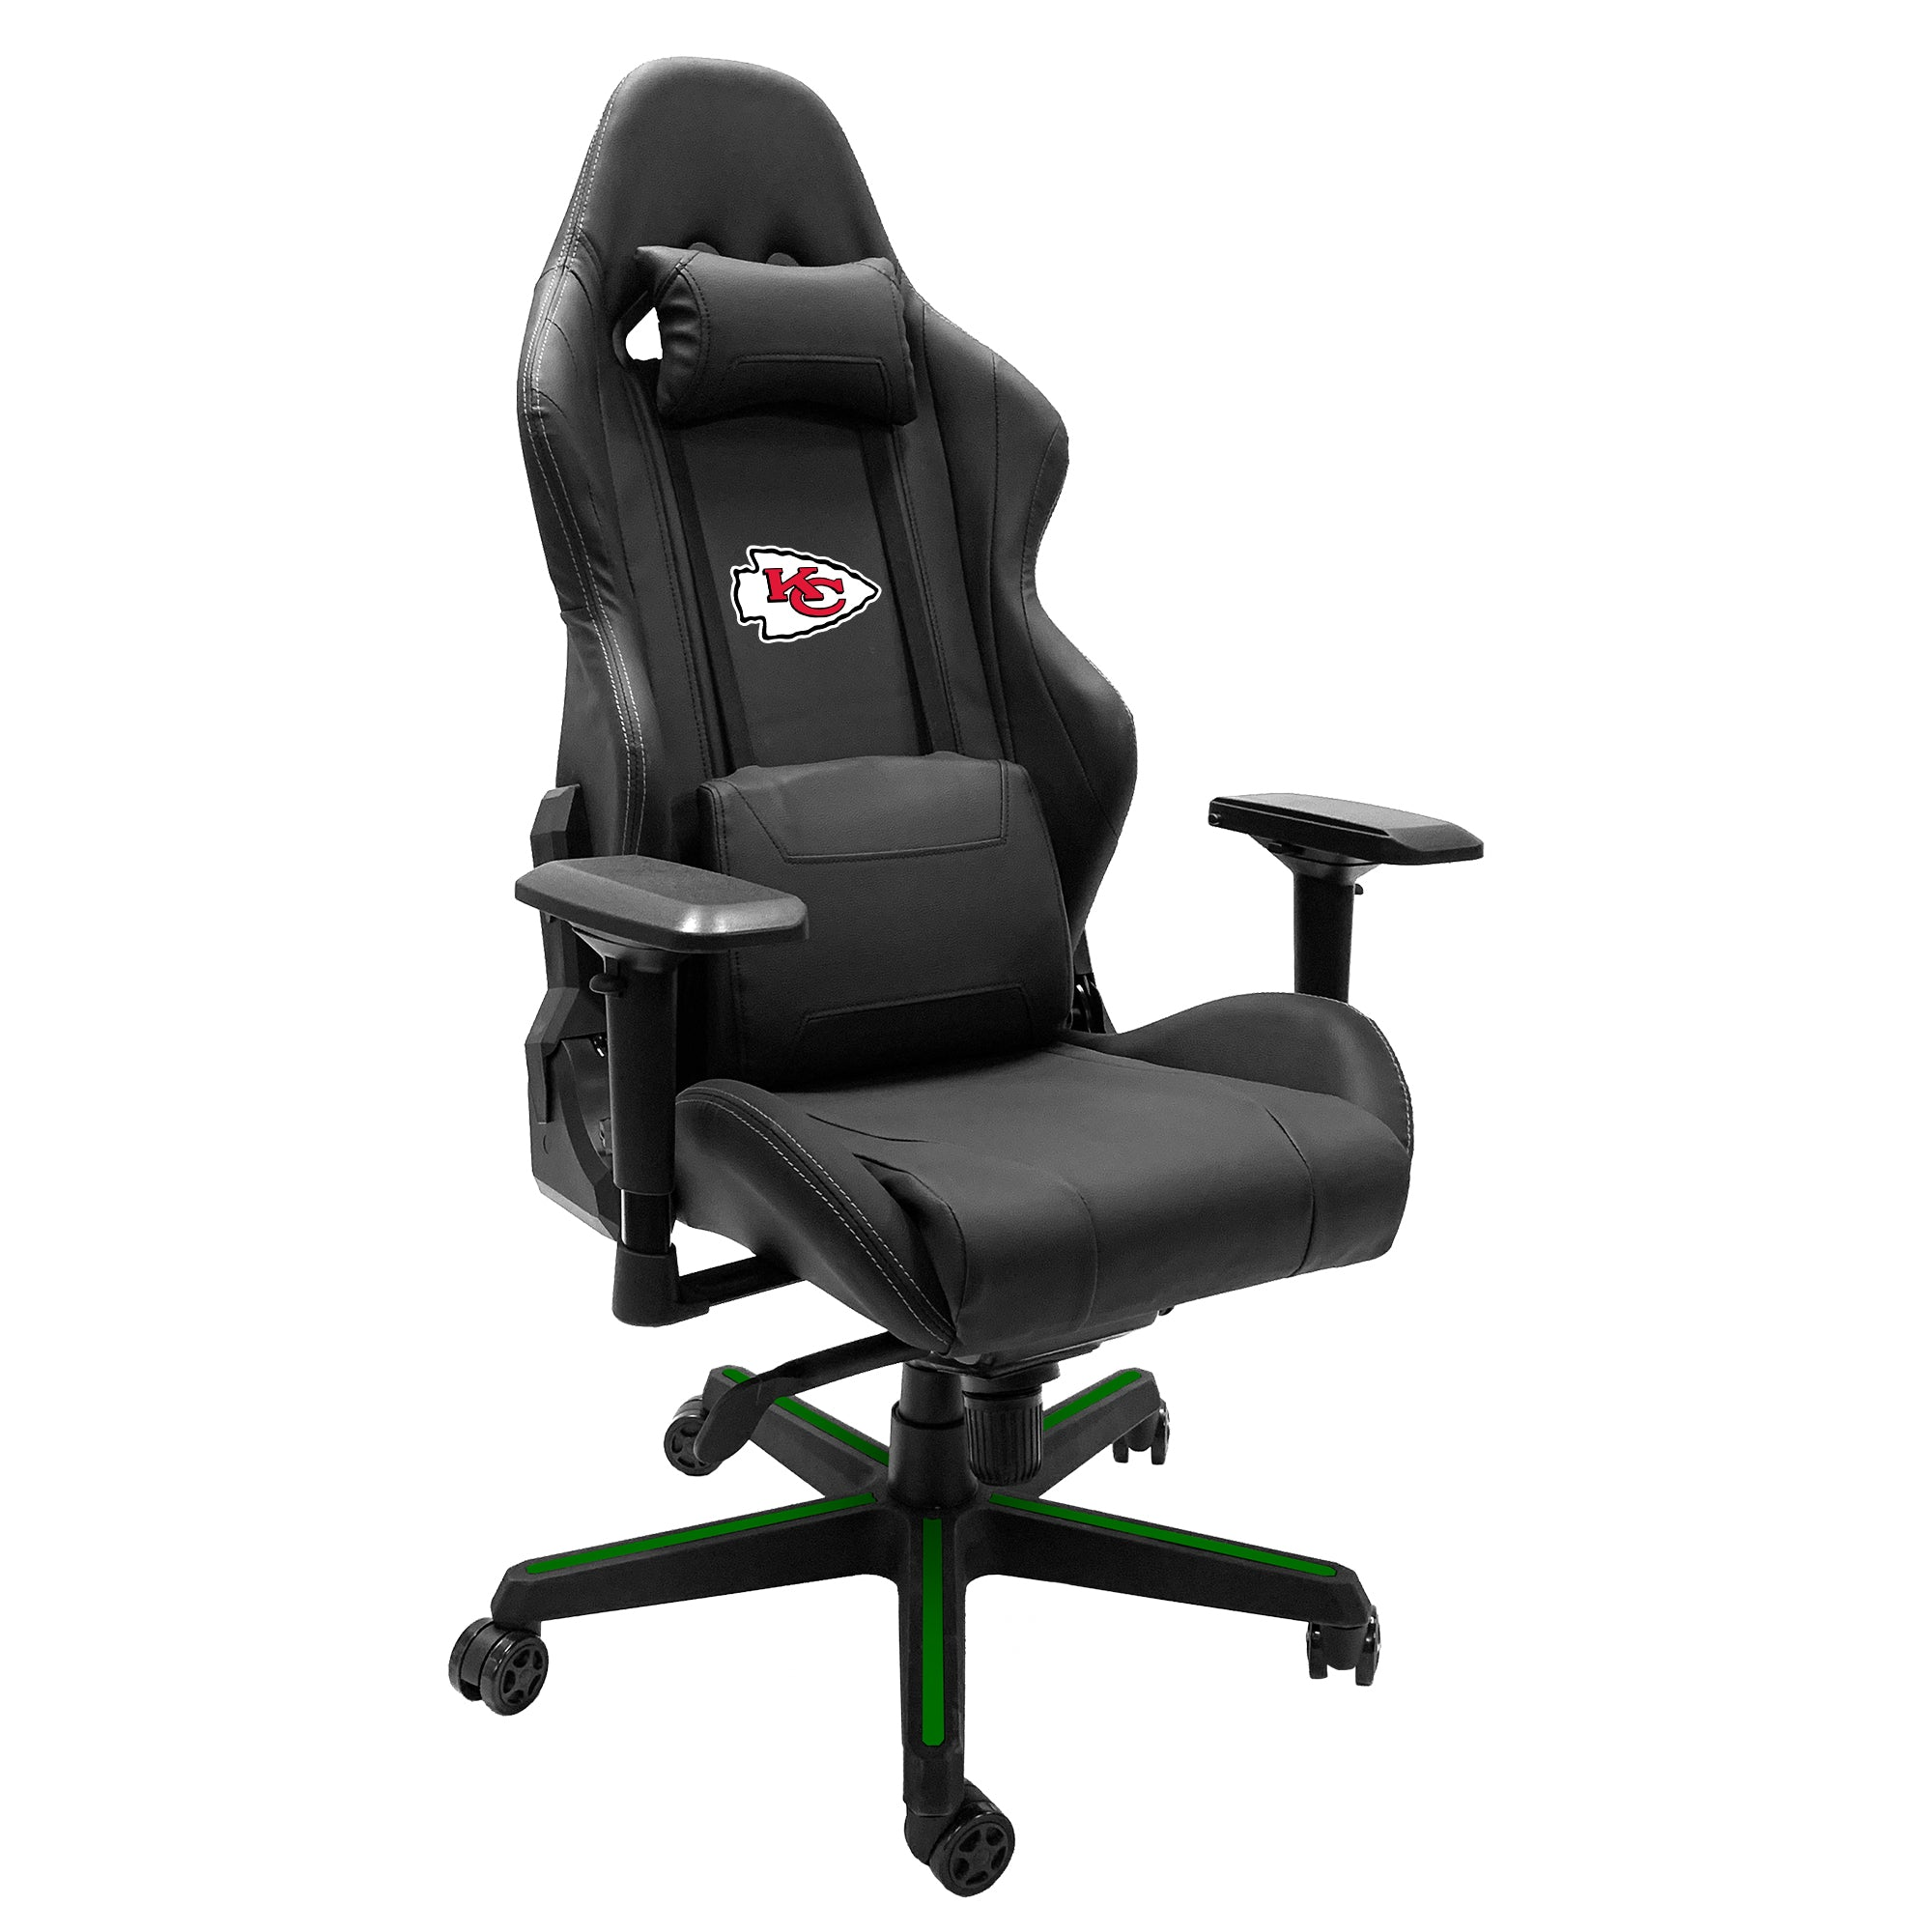 Xpression Gaming Chair with  Kansas City Chiefs Primary Logo